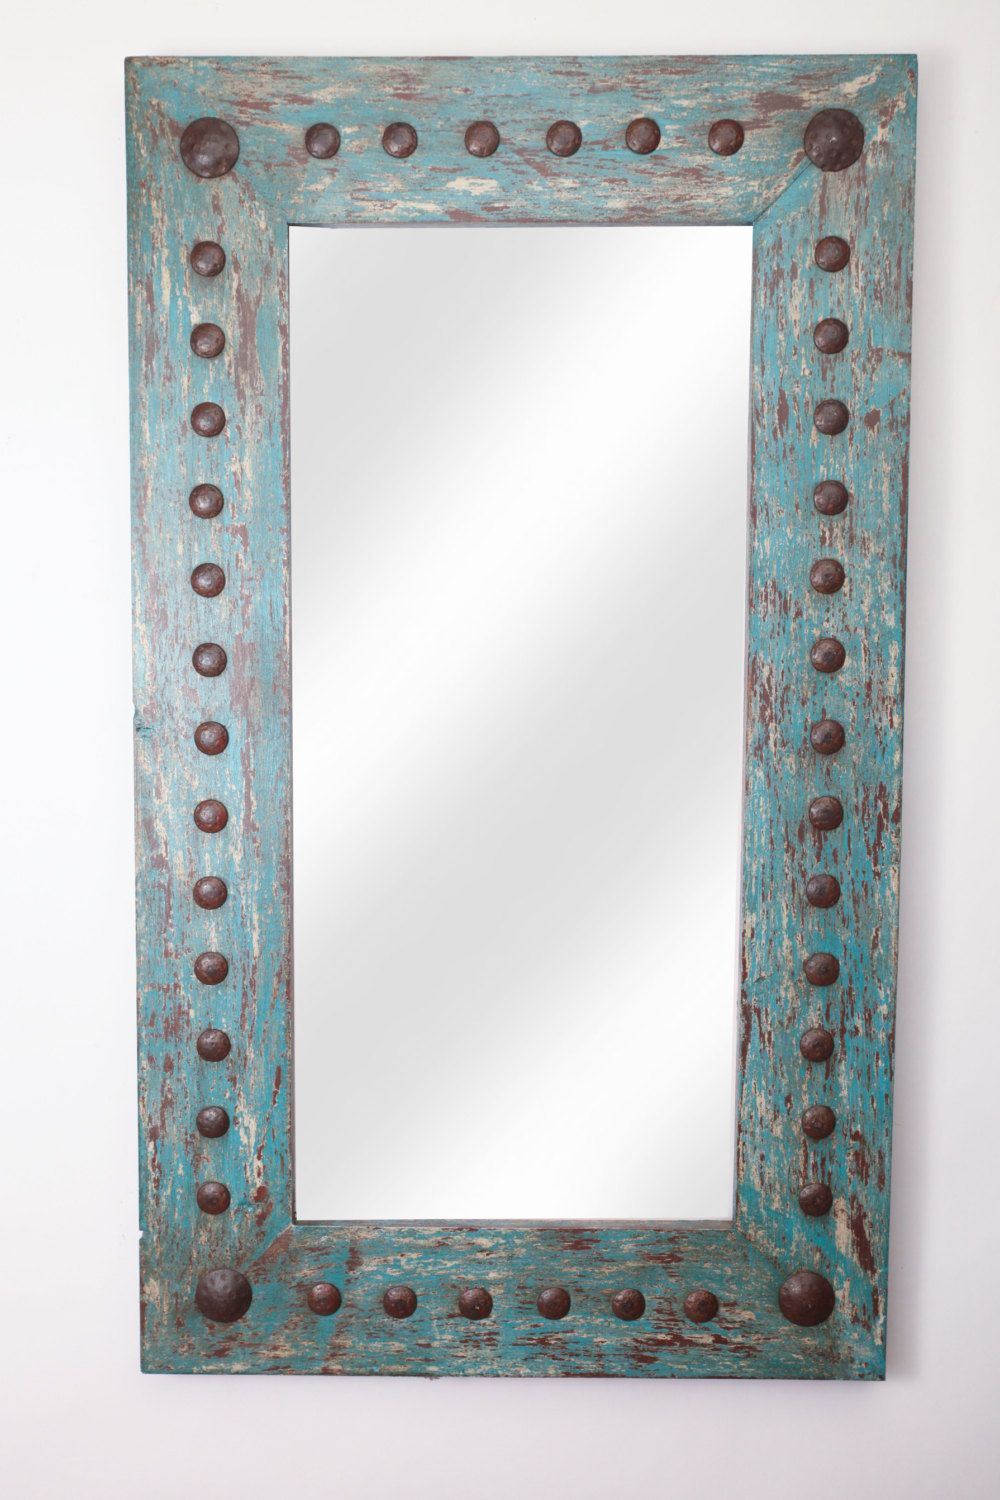 Puebla Rustic Mirror-Wood-Mexican-20x34-Rustic-Distressed Turquoise ...